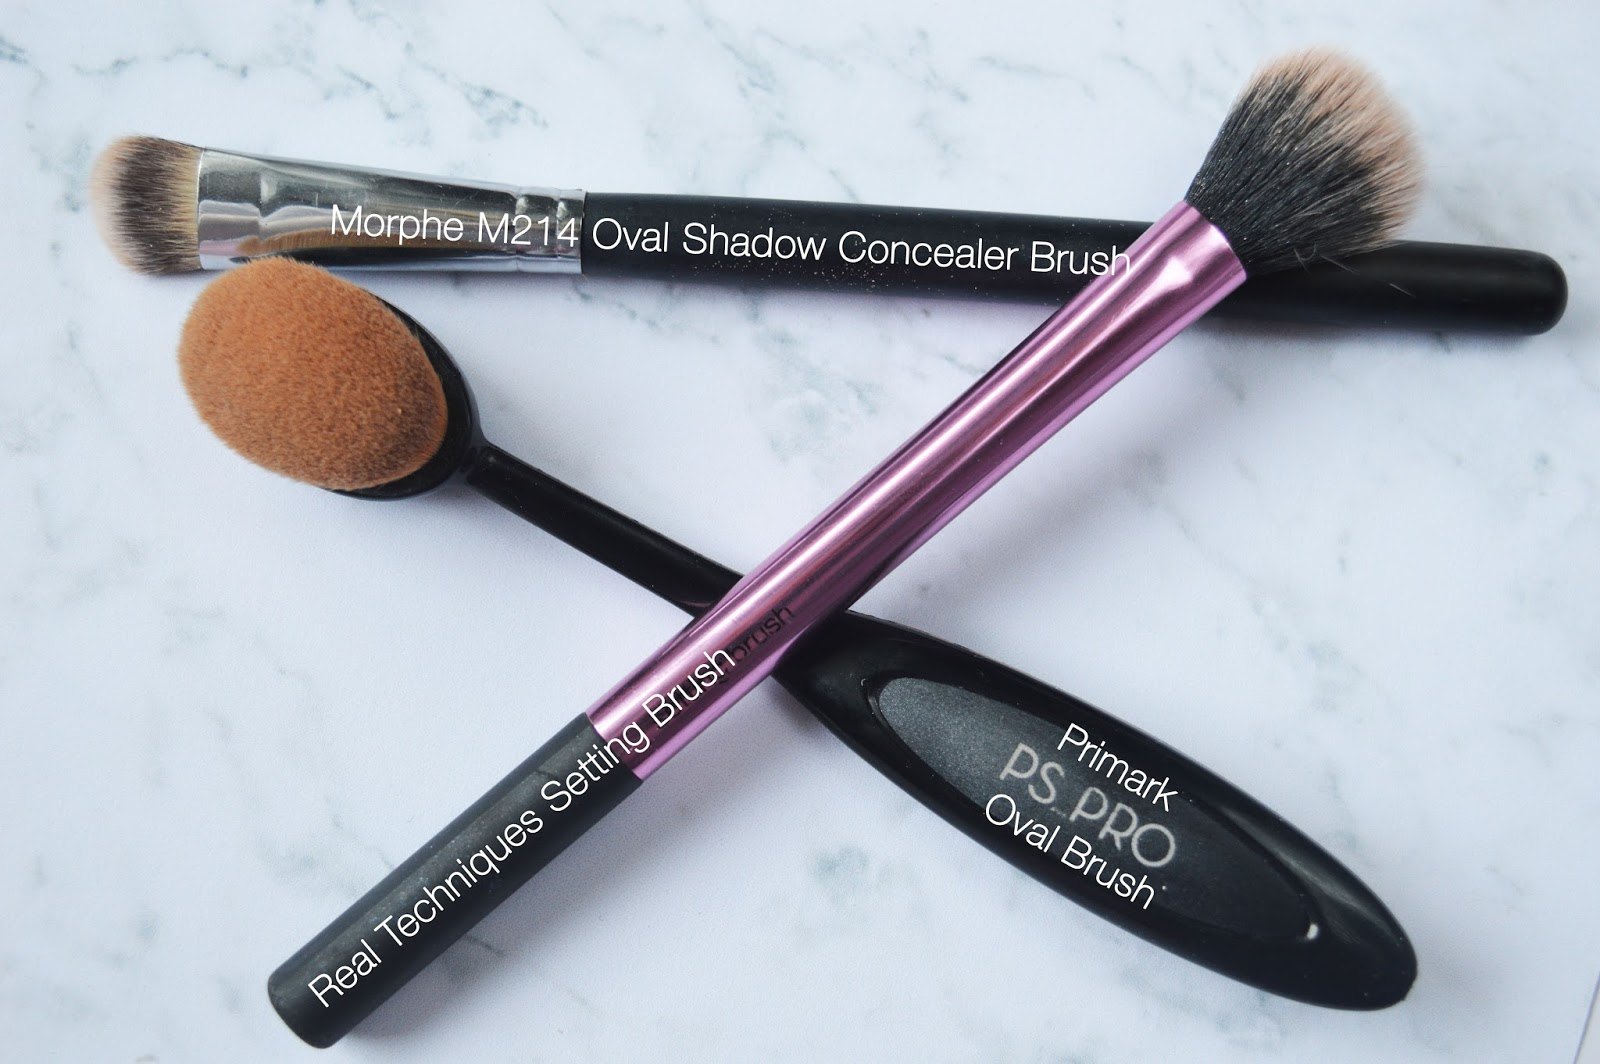 £3 Highlighters MUA Undress Your Skin Shimmer Beauty Review Morphe M214 Real Techniques Setting Brush PS Pro Oval Brush